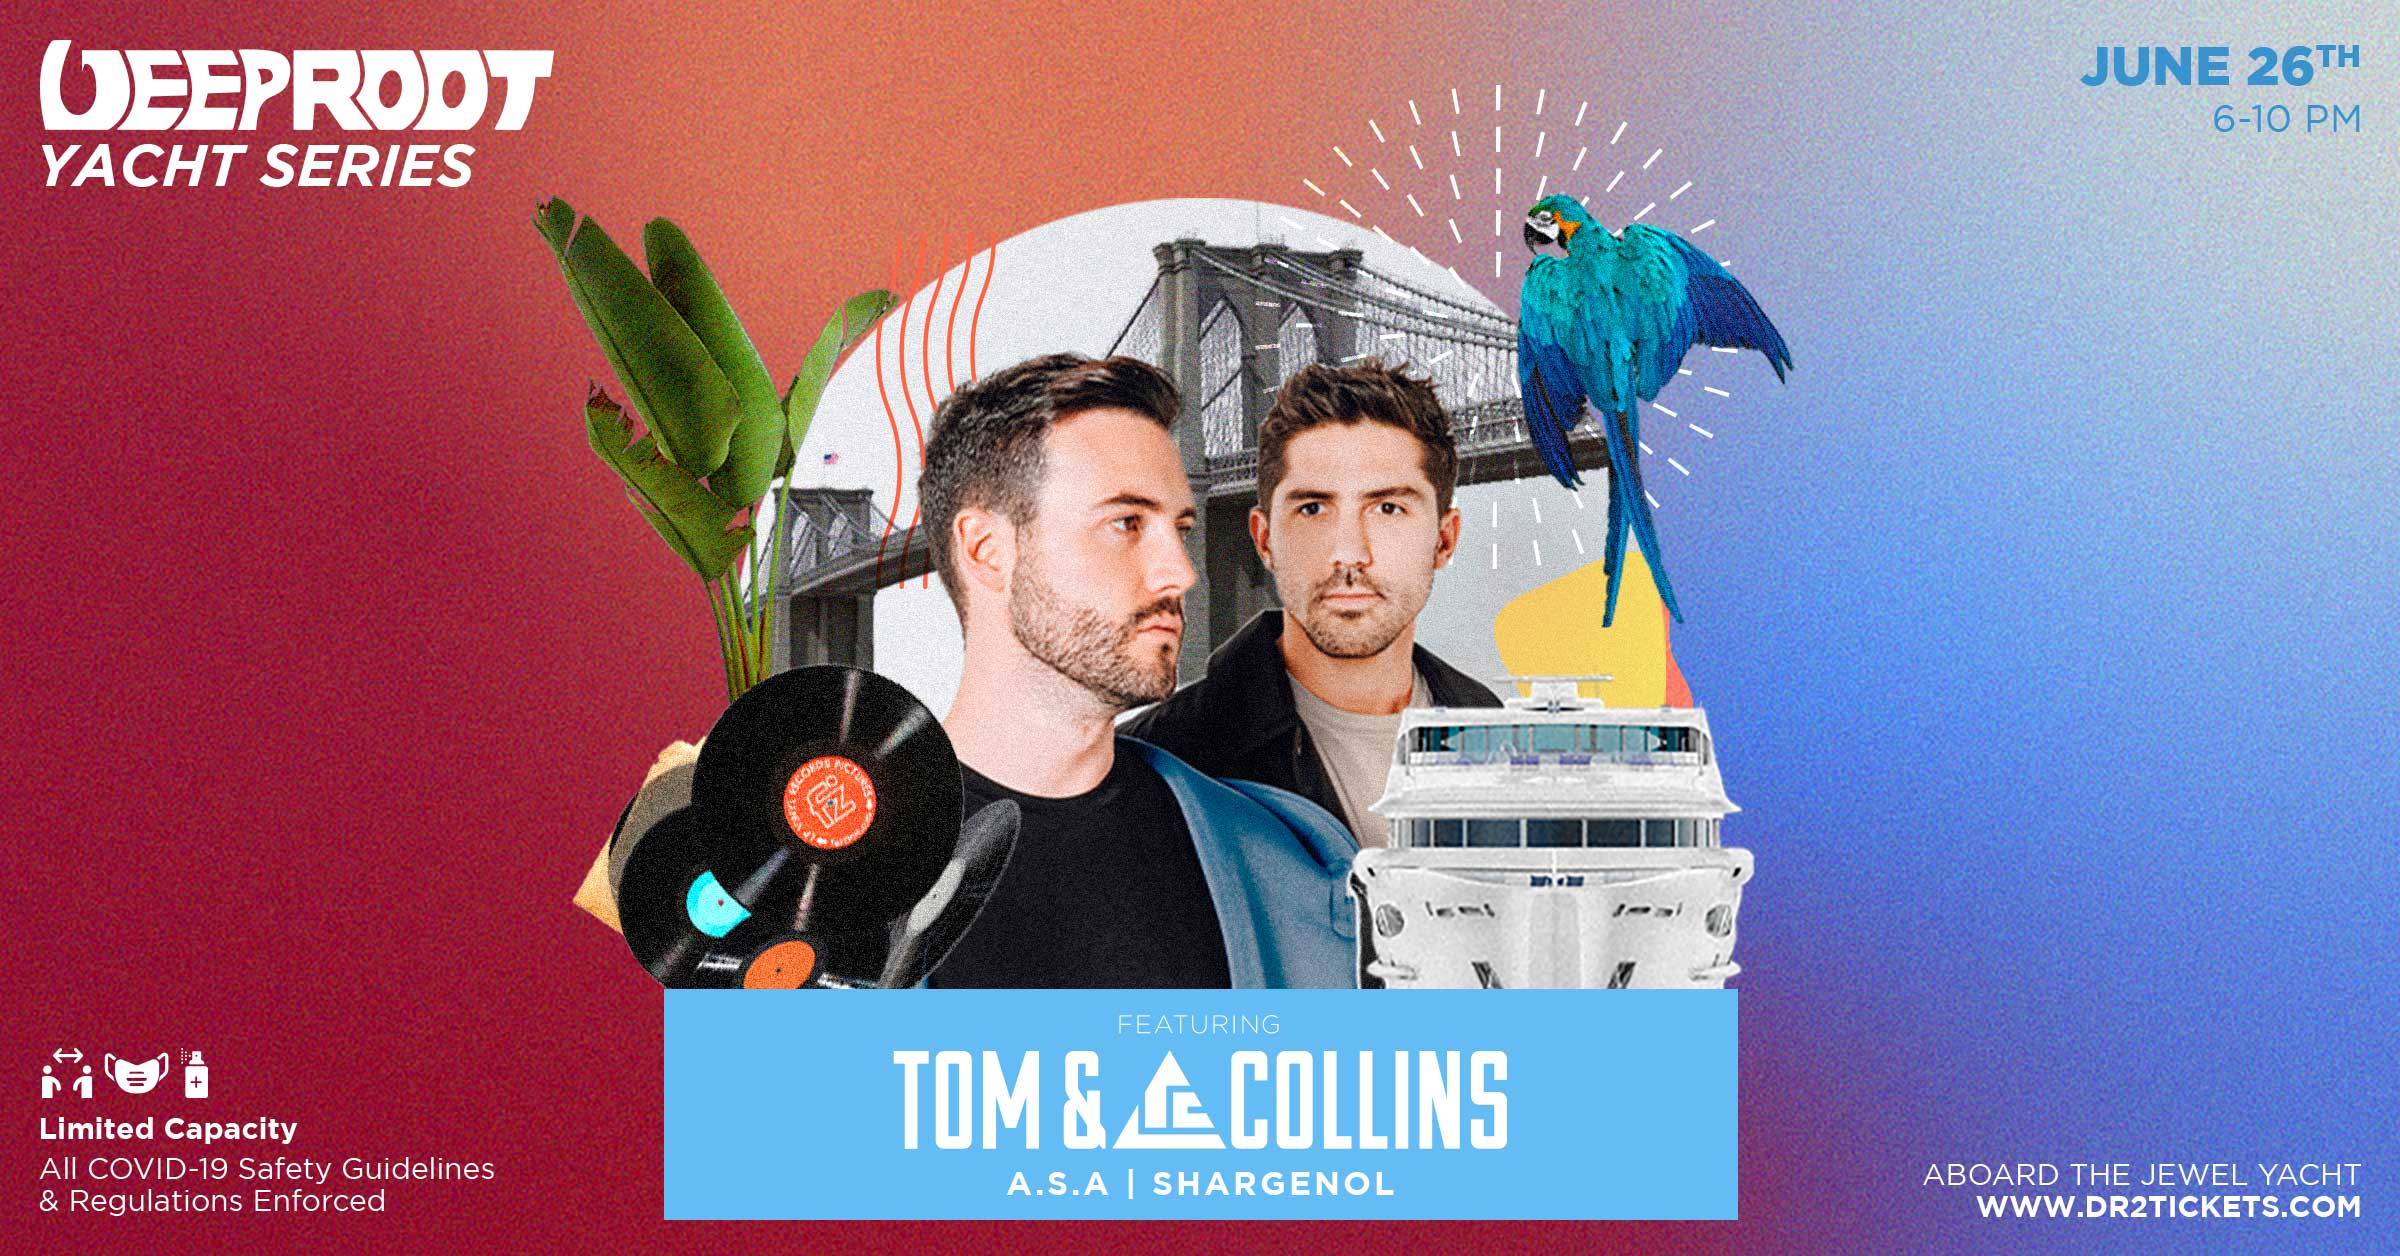 Deep Root Yacht Cruise ft Tom & Collins 6/26